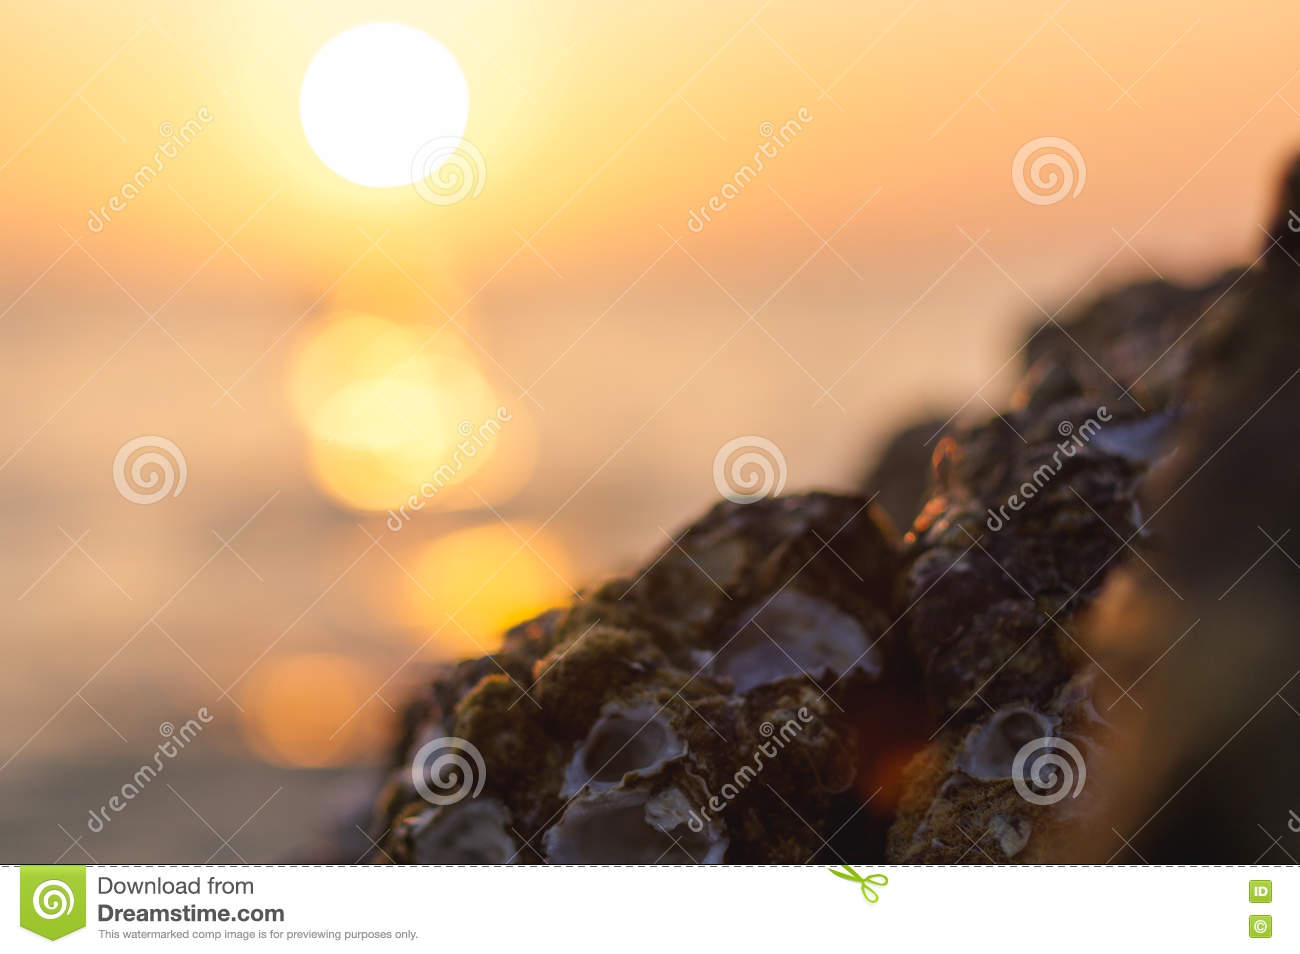 Blur colorful sunset background with shell on the rock closeup, abstract nature